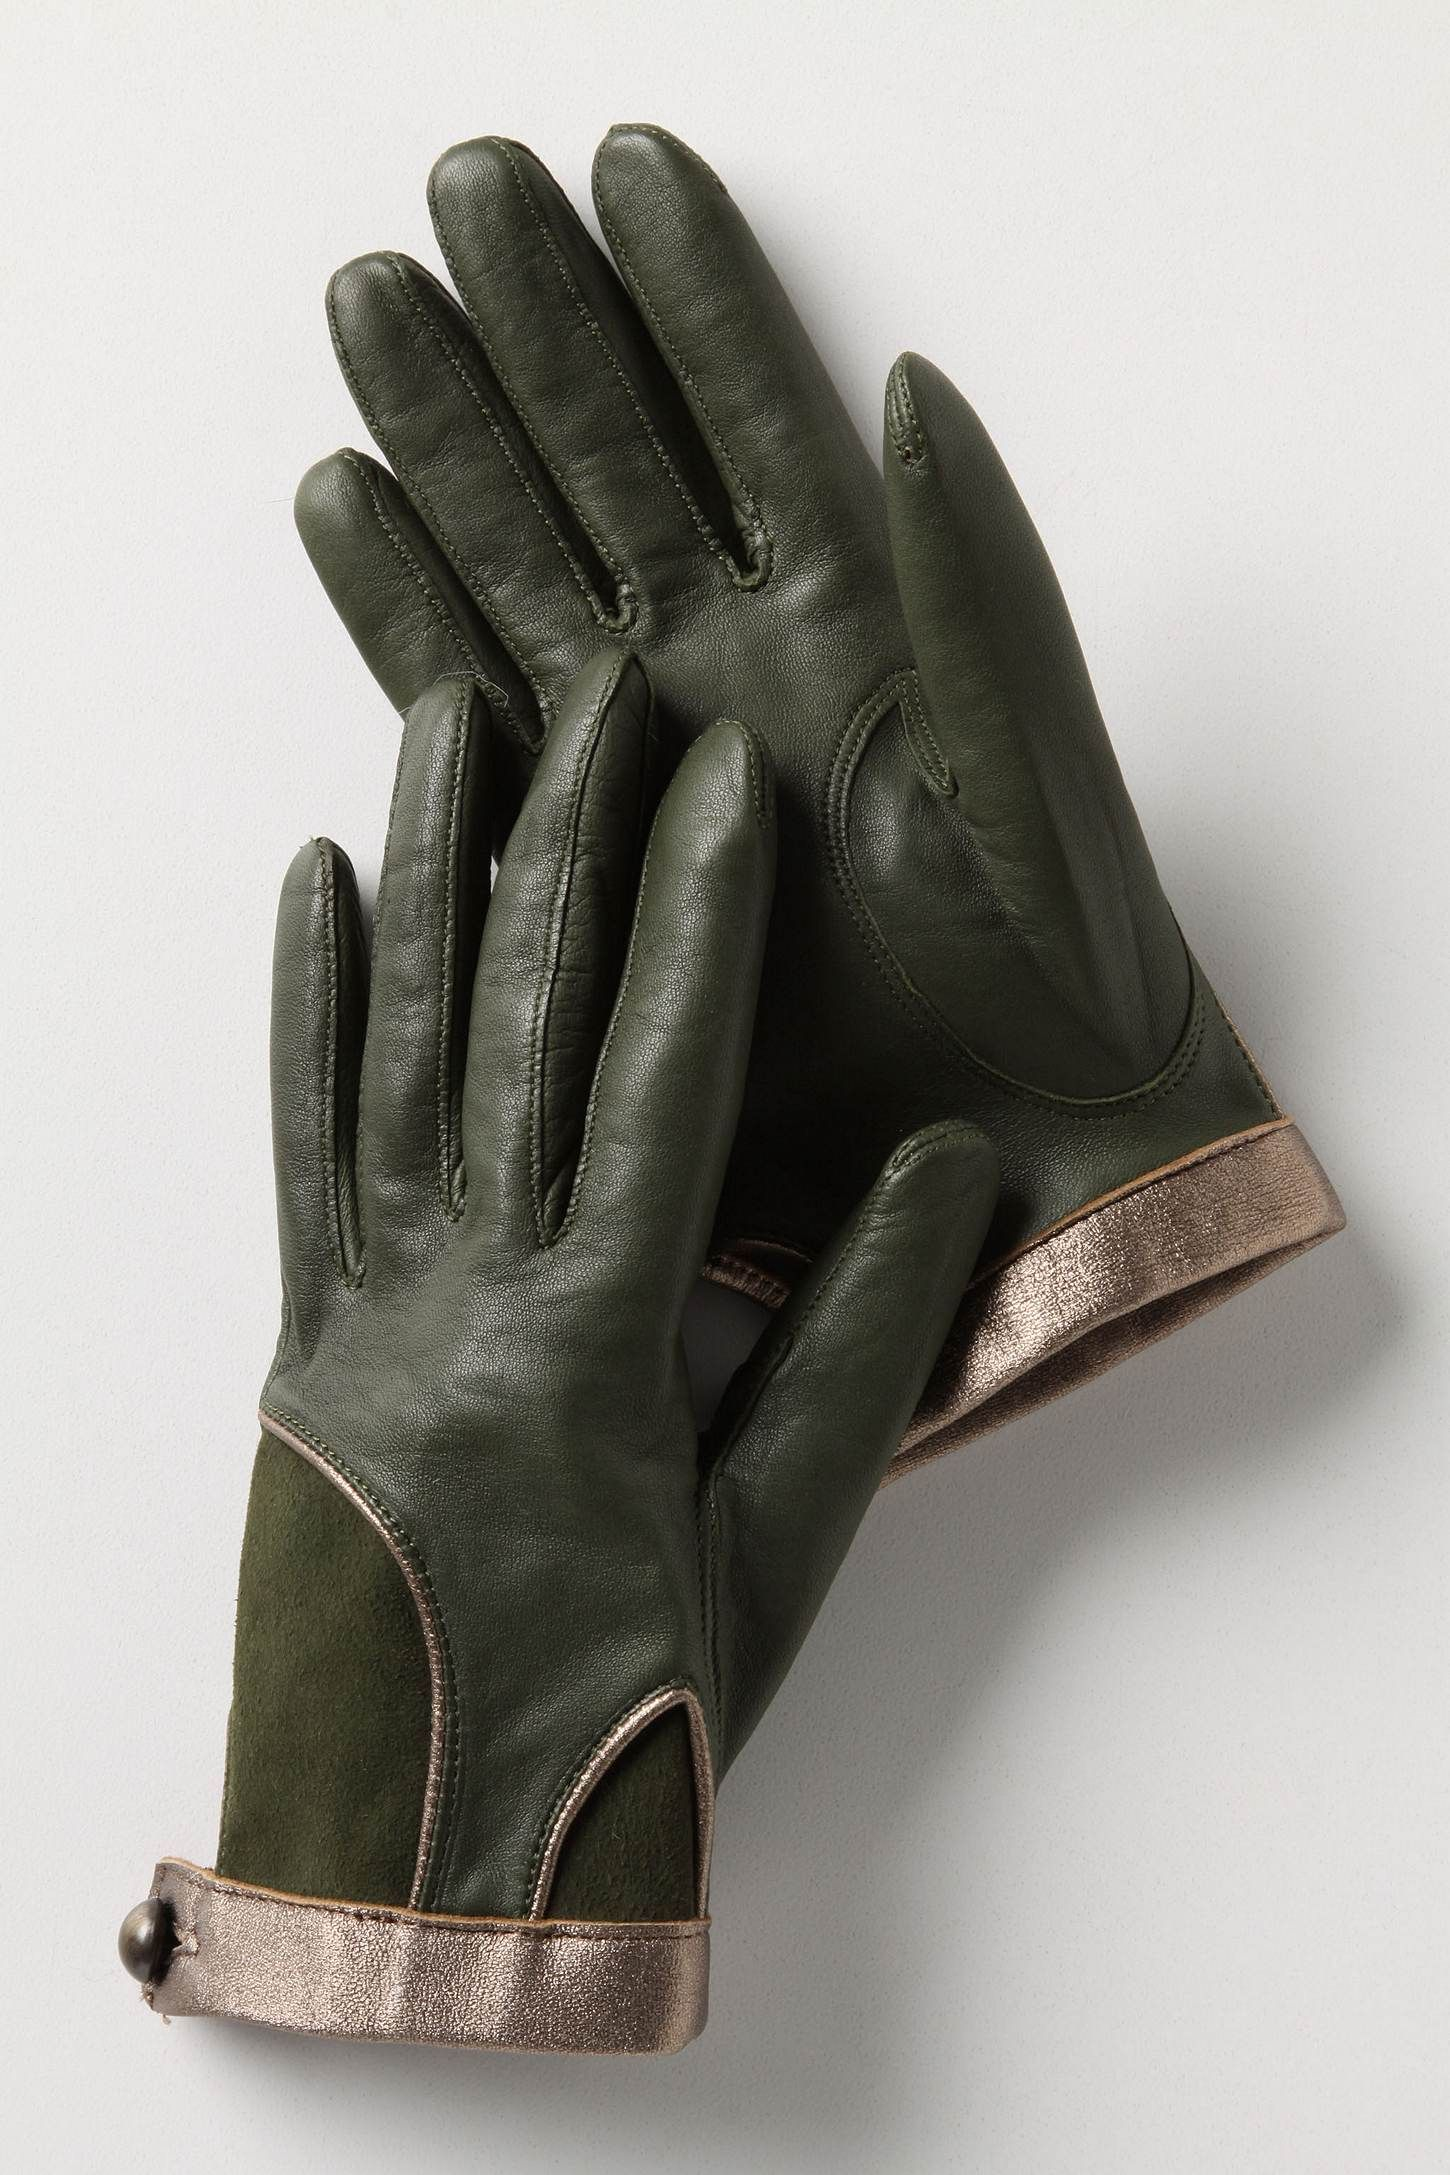 Ladies leather gloves with silk lining -  Test Of Time Leather Driving Gloves Gold Trim And Silk Lining